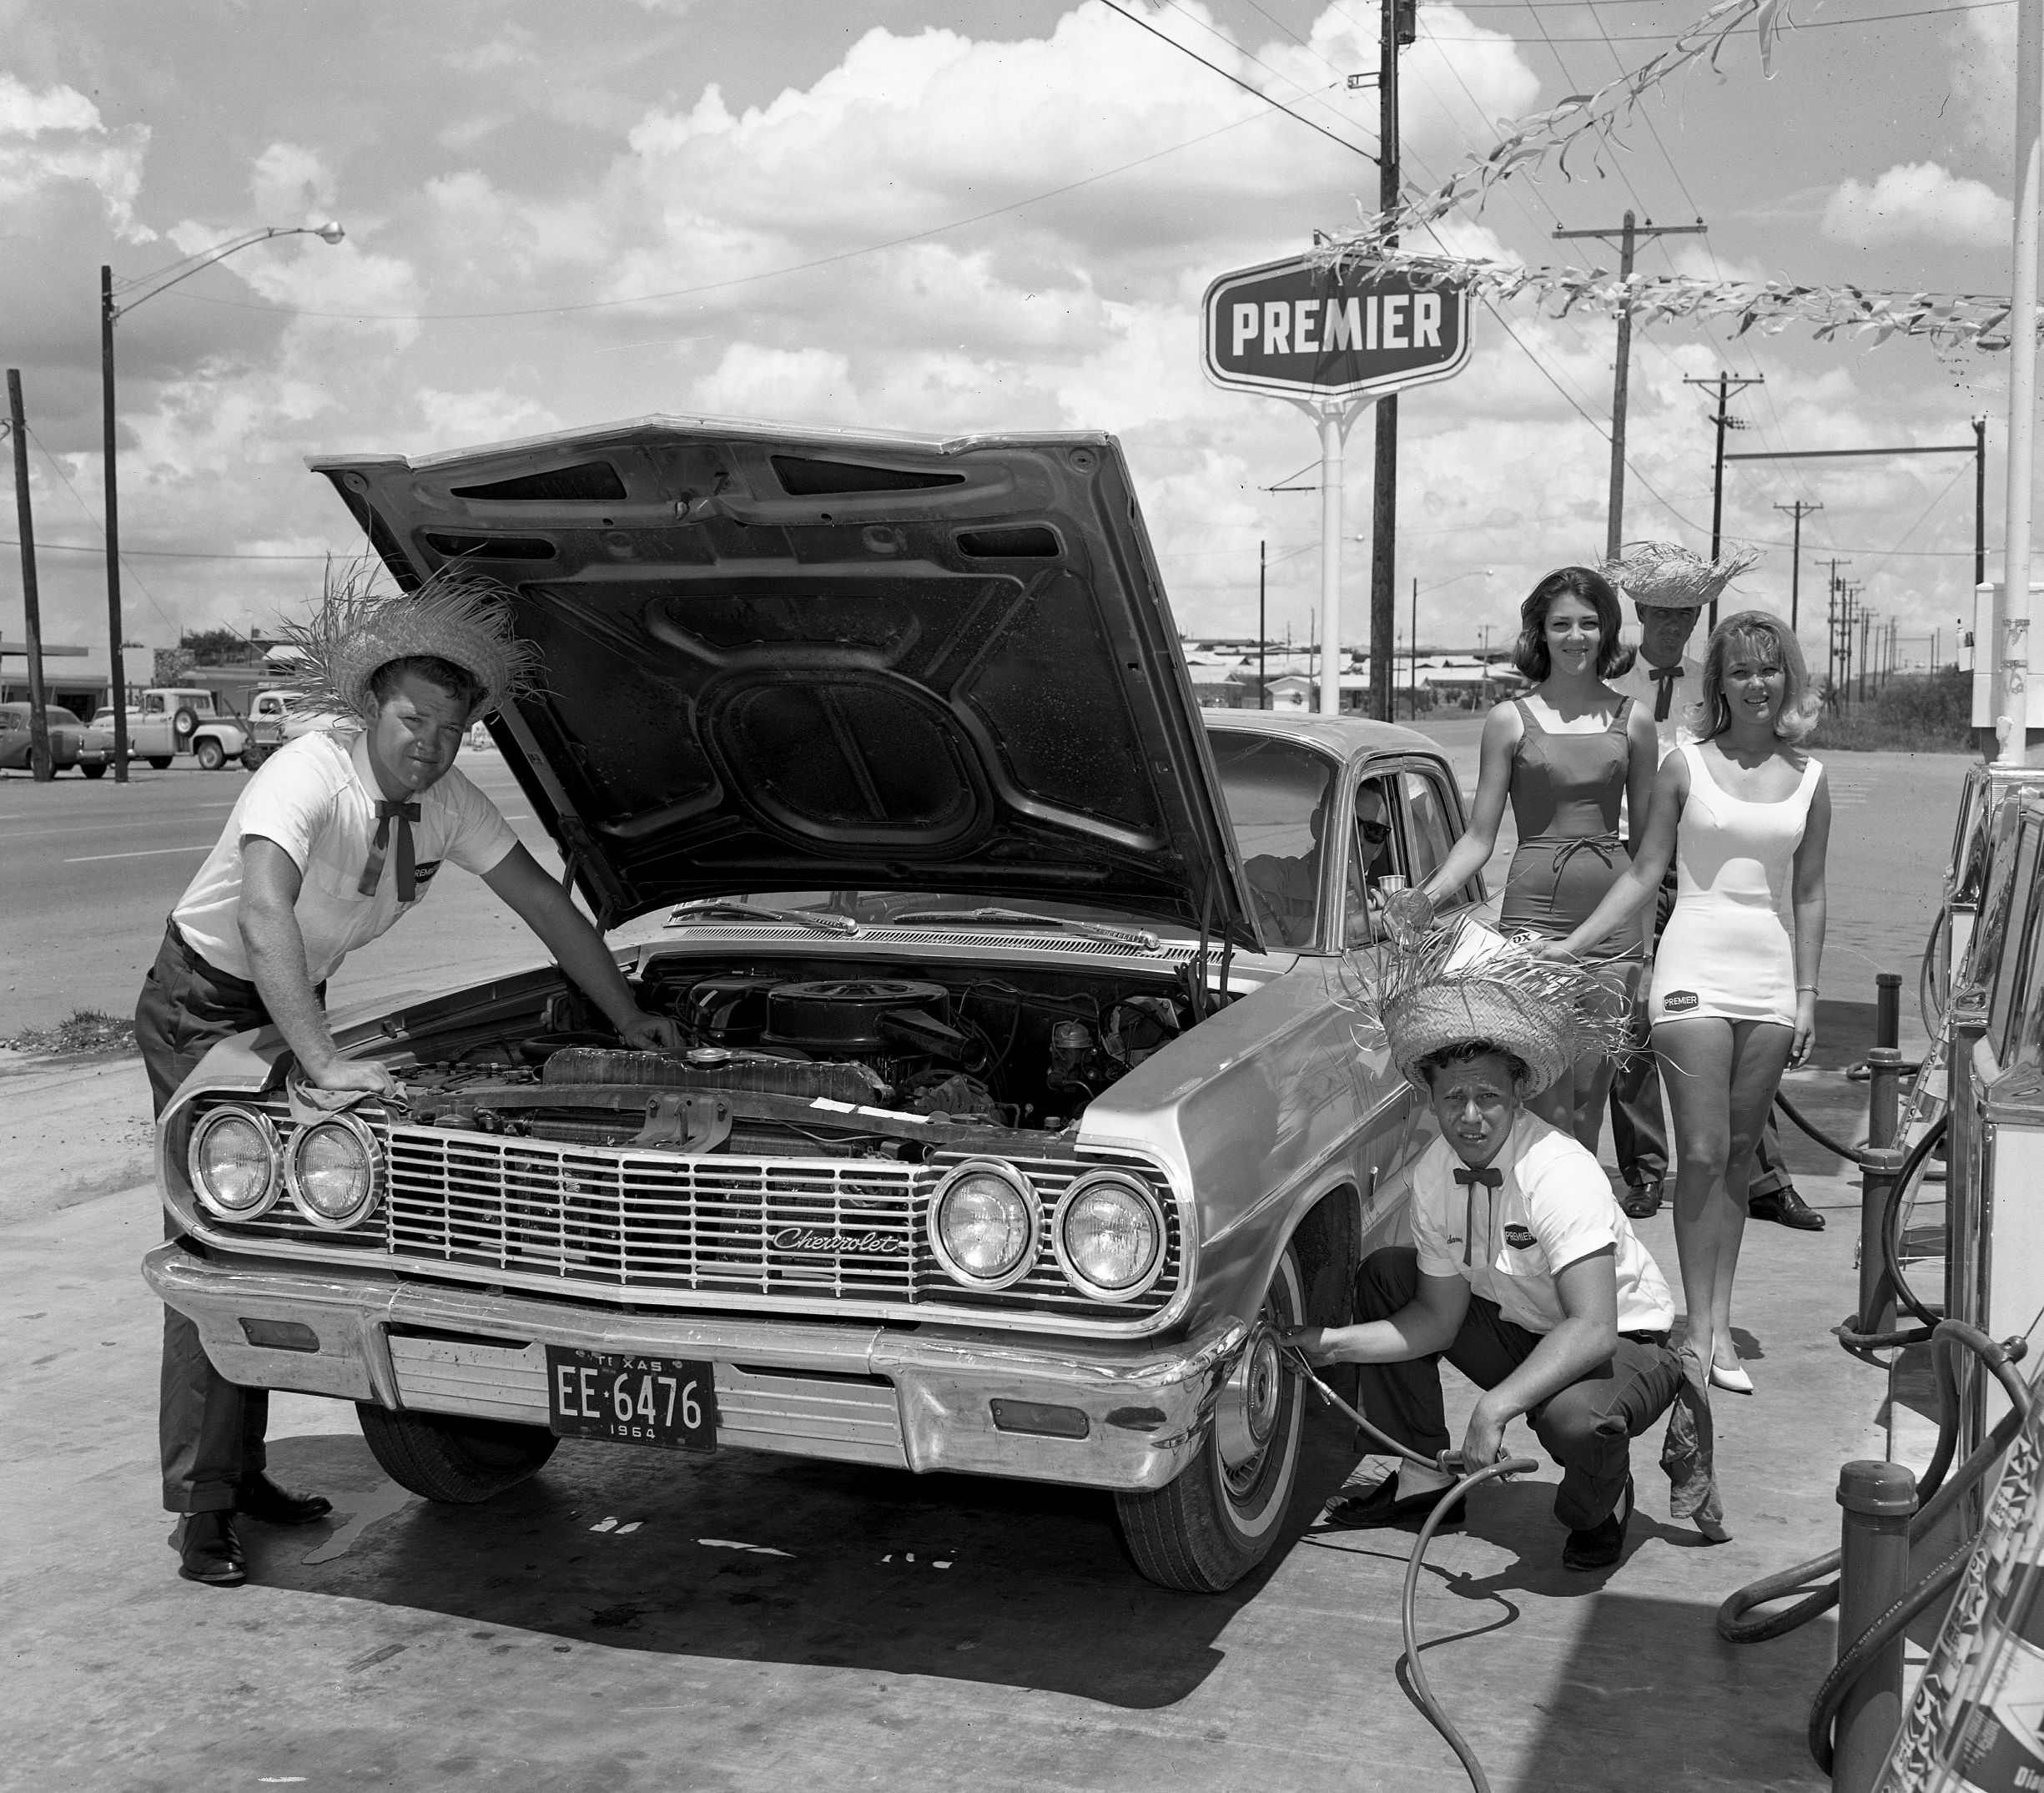 New premier gas station at fort worth texas 1964